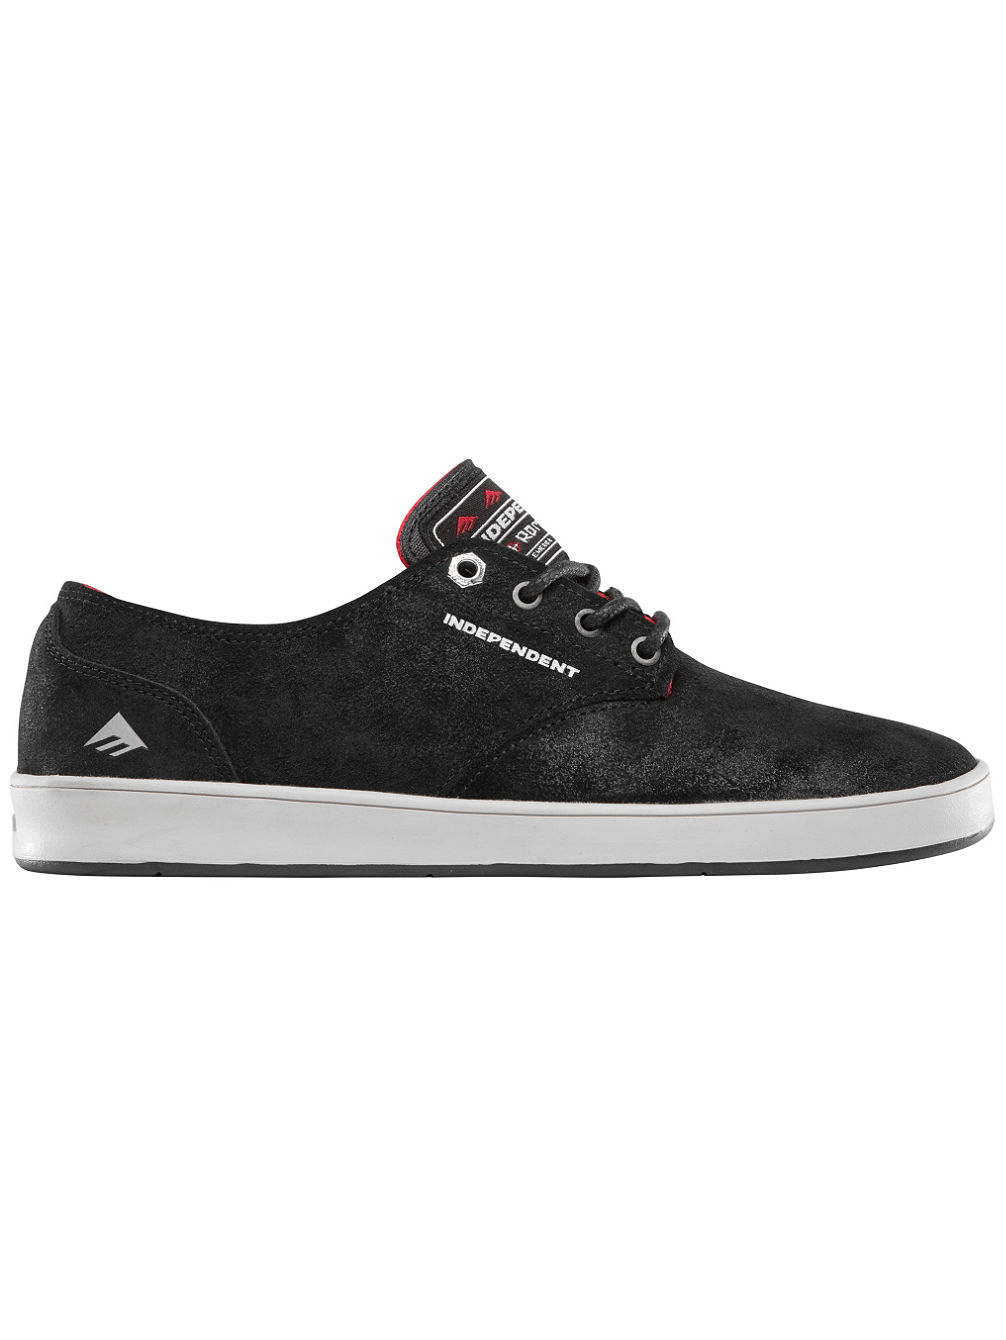 Romero Laced X Indy Skate Shoes